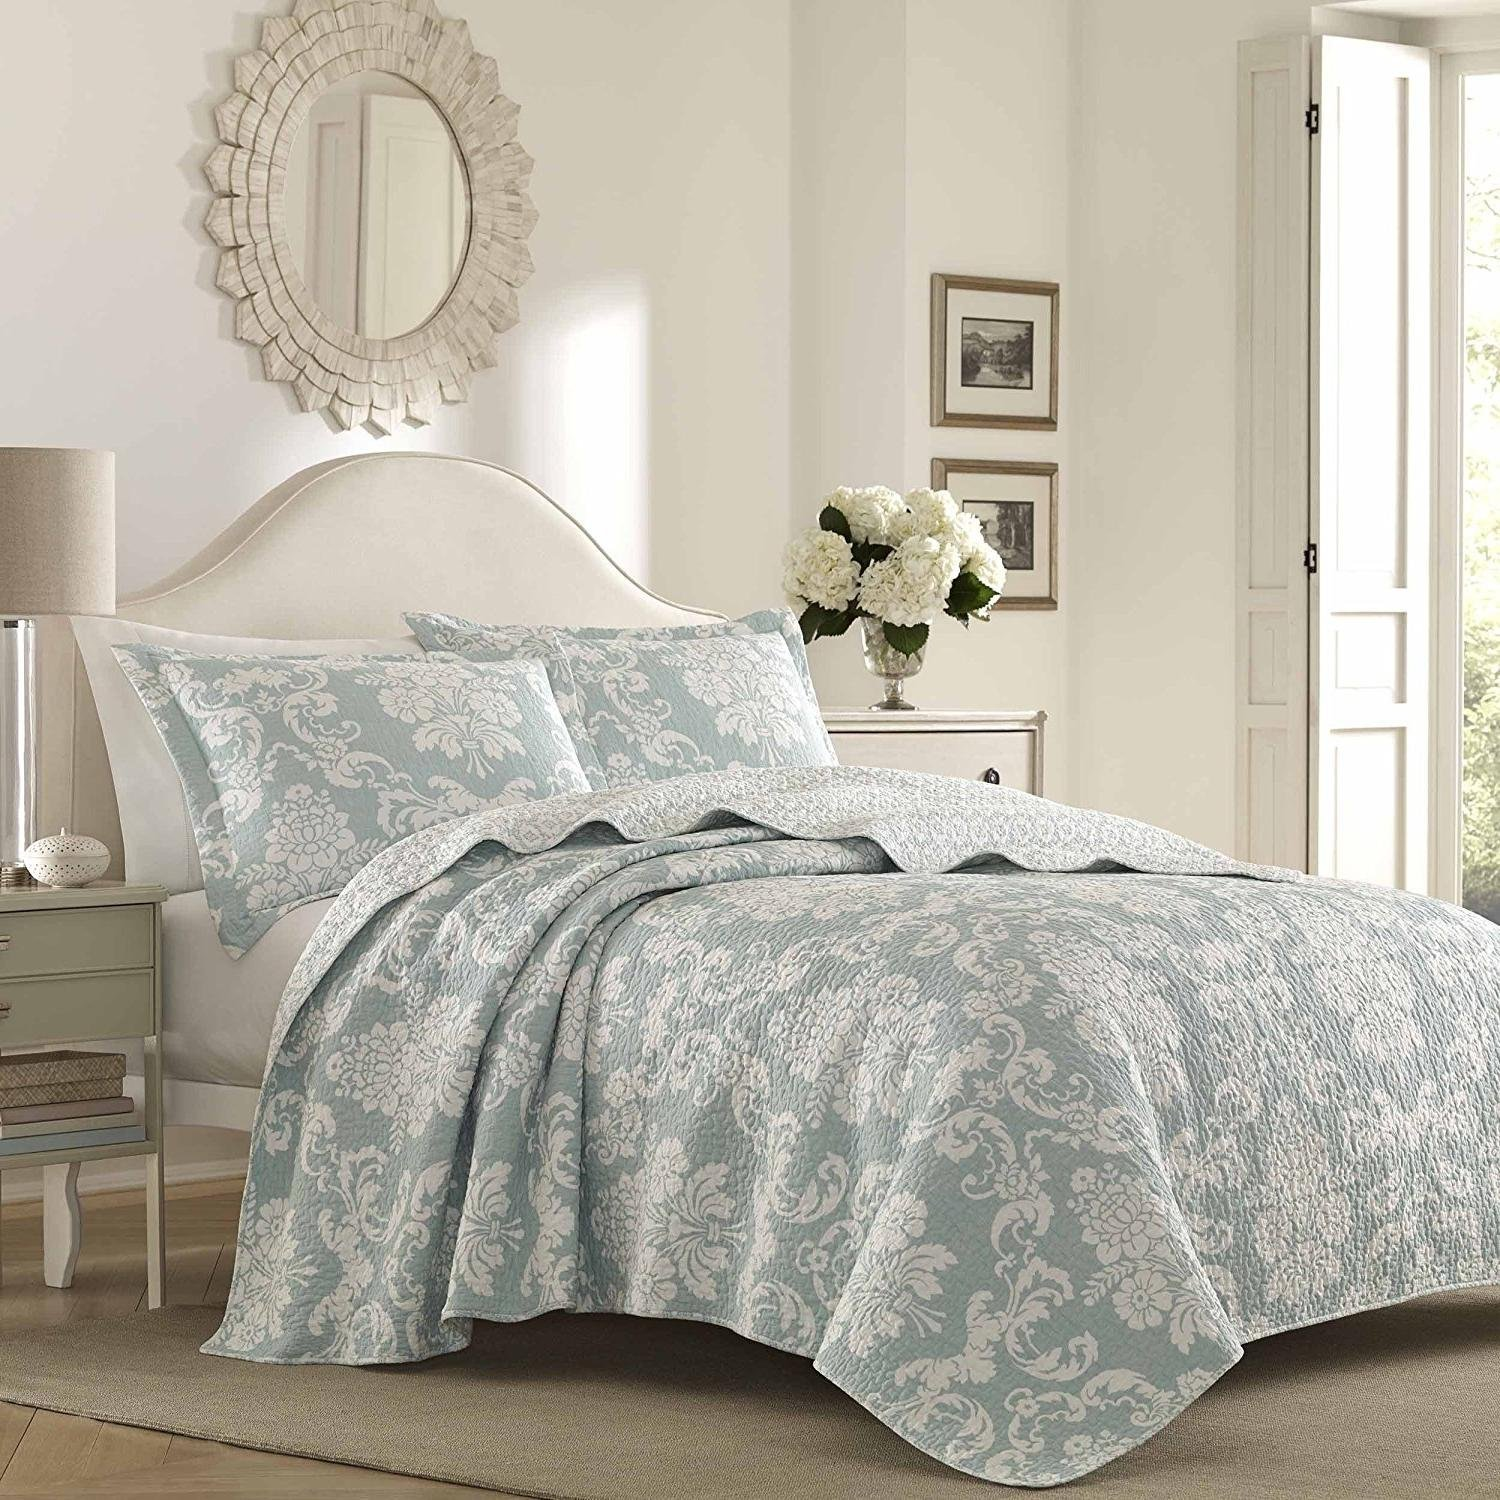 MISC 2pc Blue Damask Twin Size Quilt, Cotton, Floral White Grey Bohemian MotifChic, Bedding, Vintage Victorian Indie Modern, Flowers Cottage Cabin Lake House